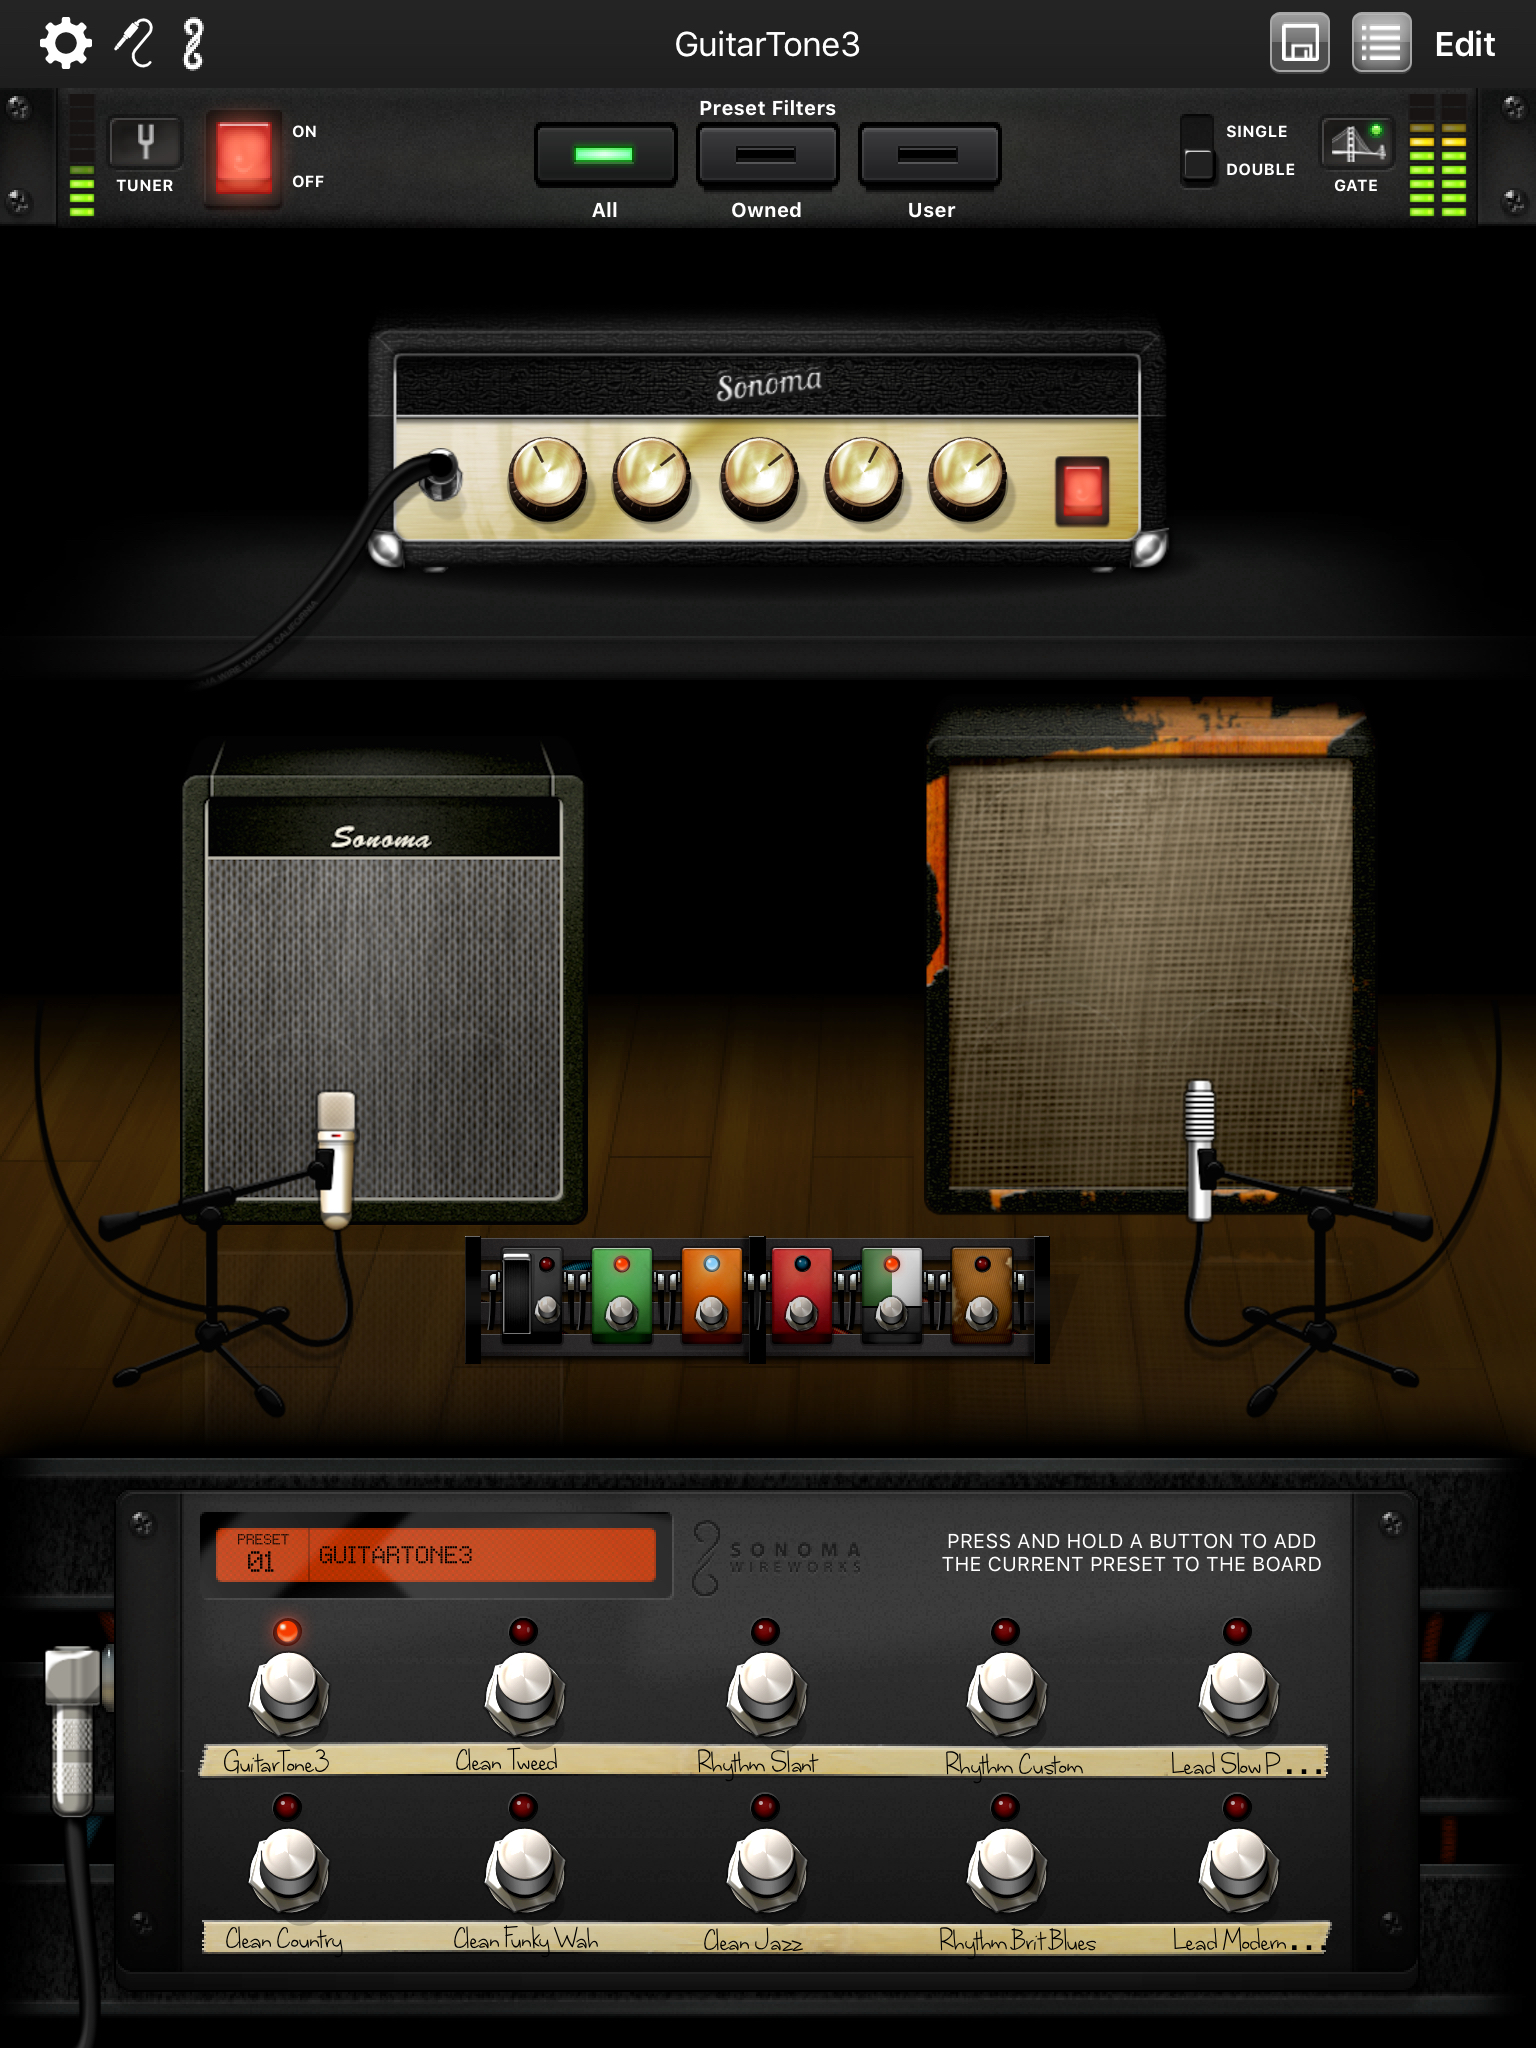 GuitarTone guitar amps and effects iPhone and iPad app for songwriters